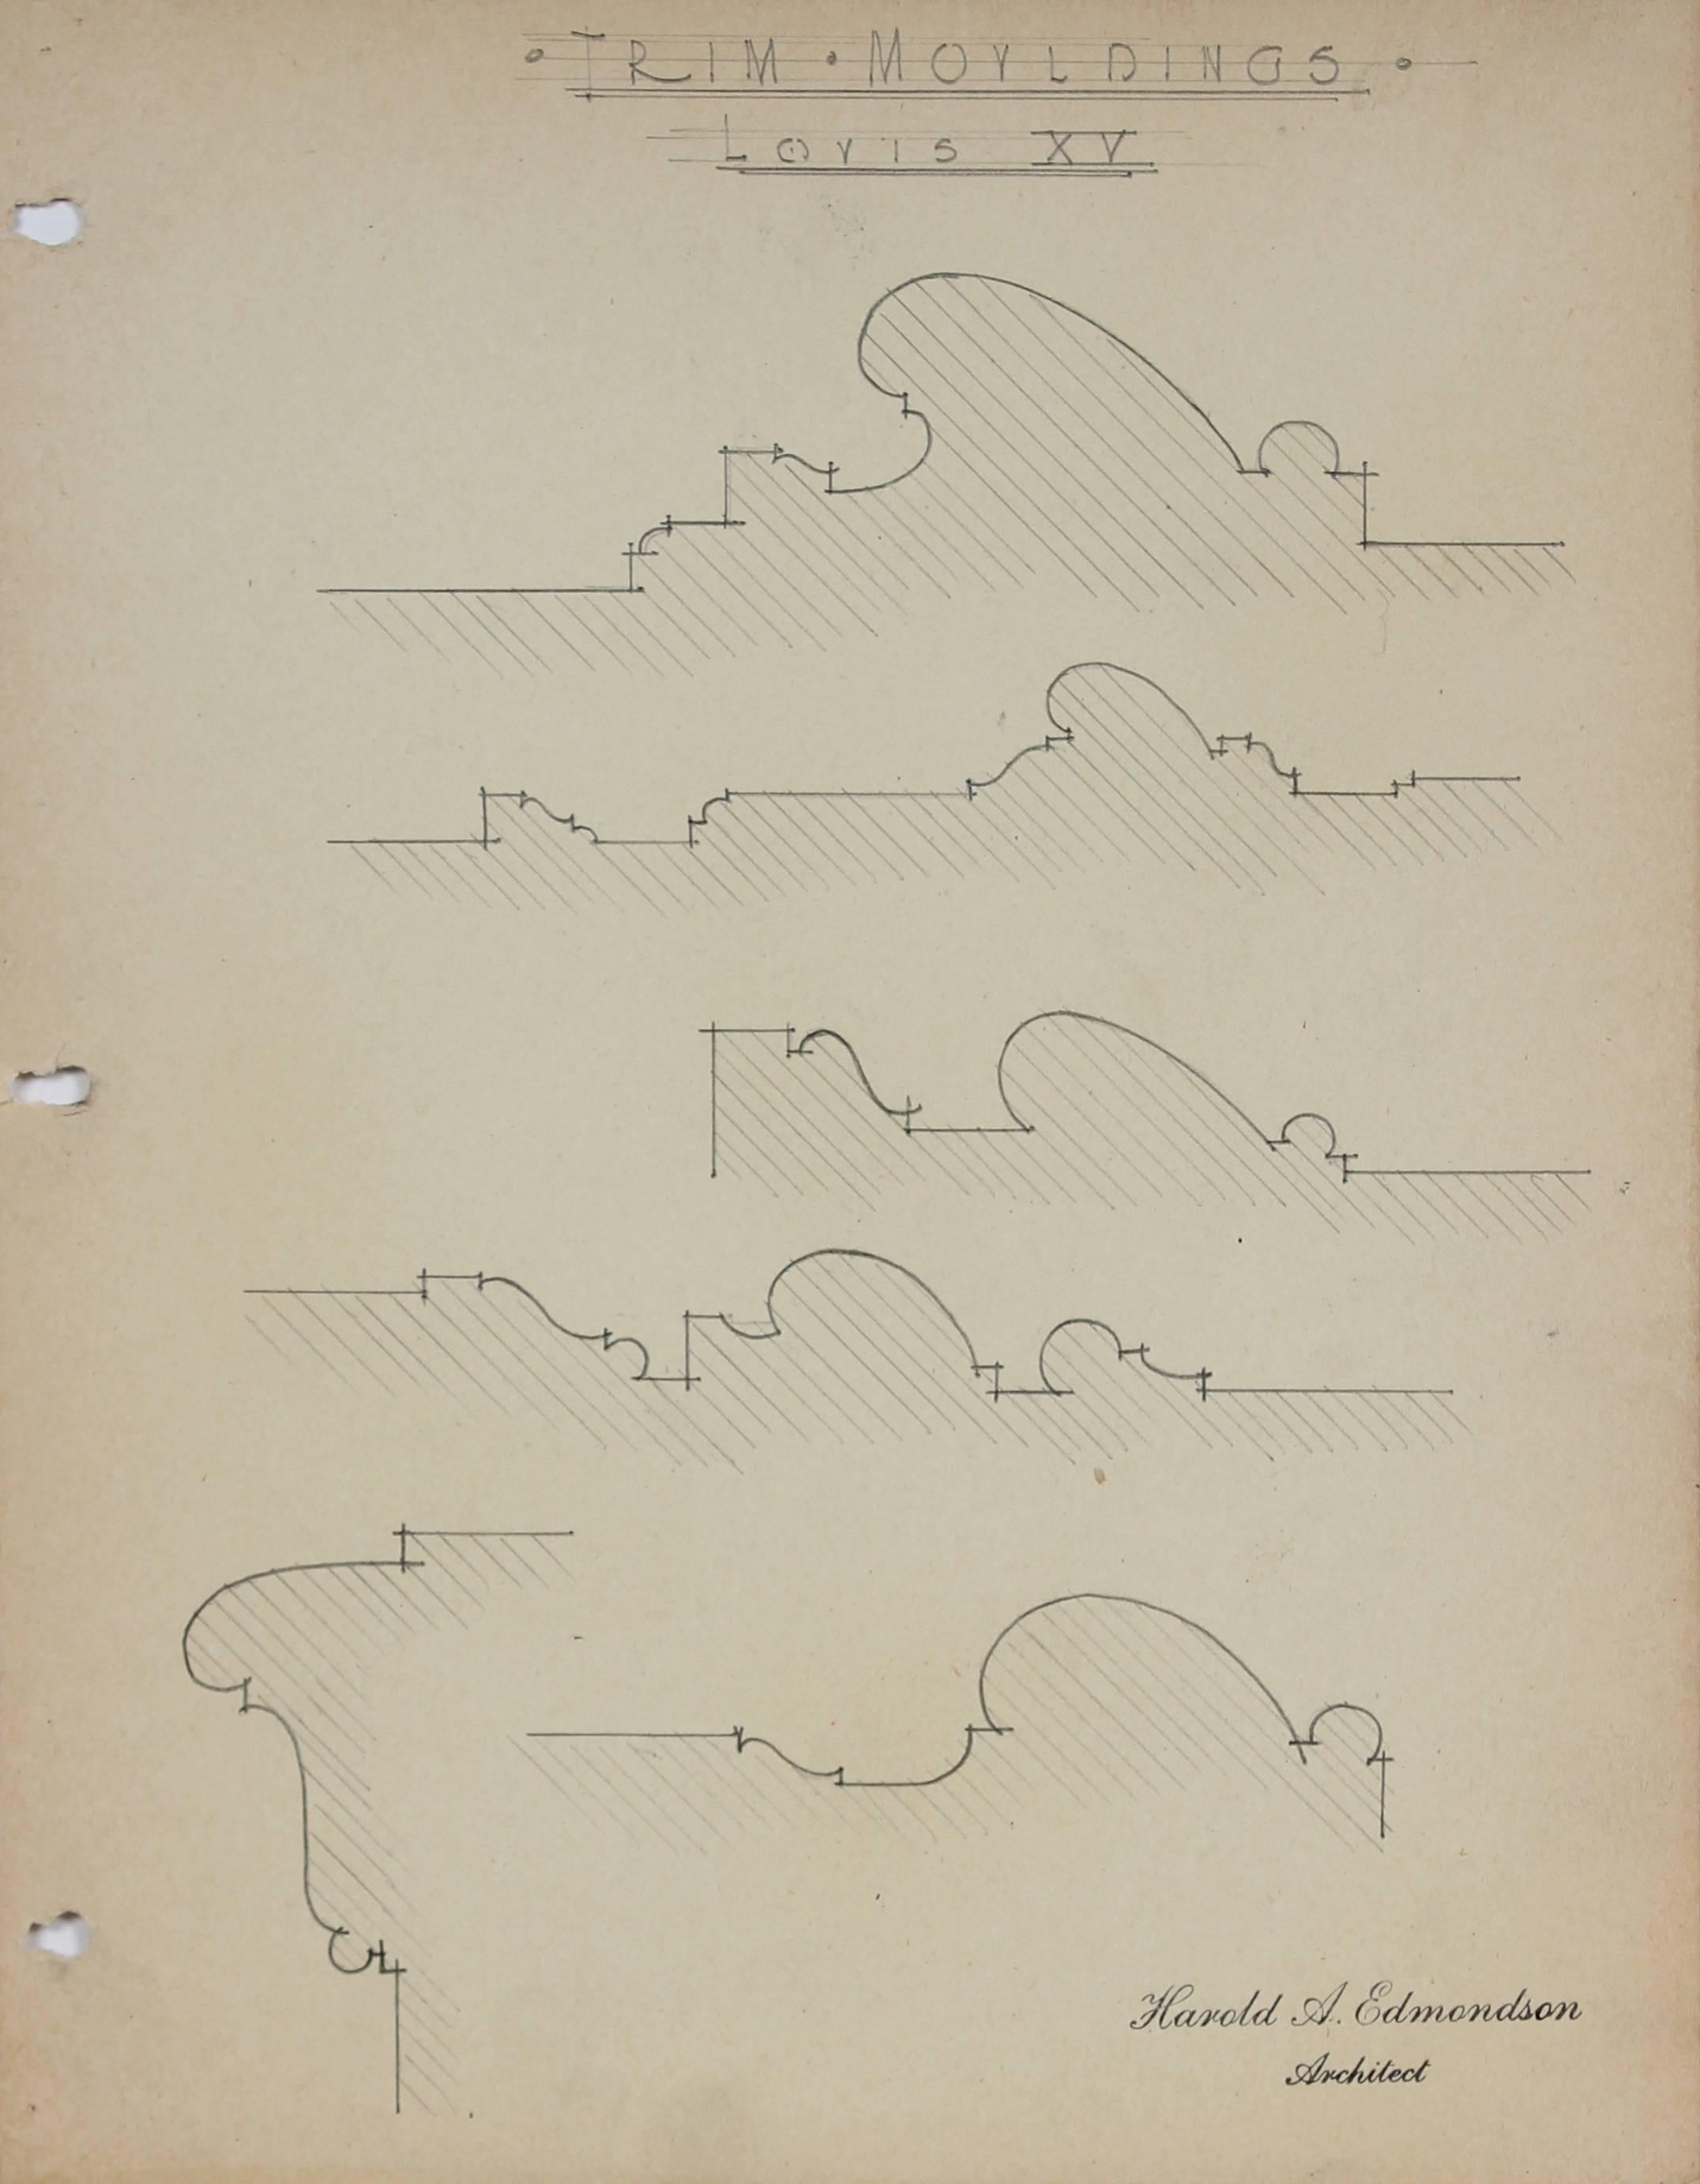 """""""Trim Mouldings, Louis XV"""" Architectural Detail Drawing in Graphite, 1920s-30s"""